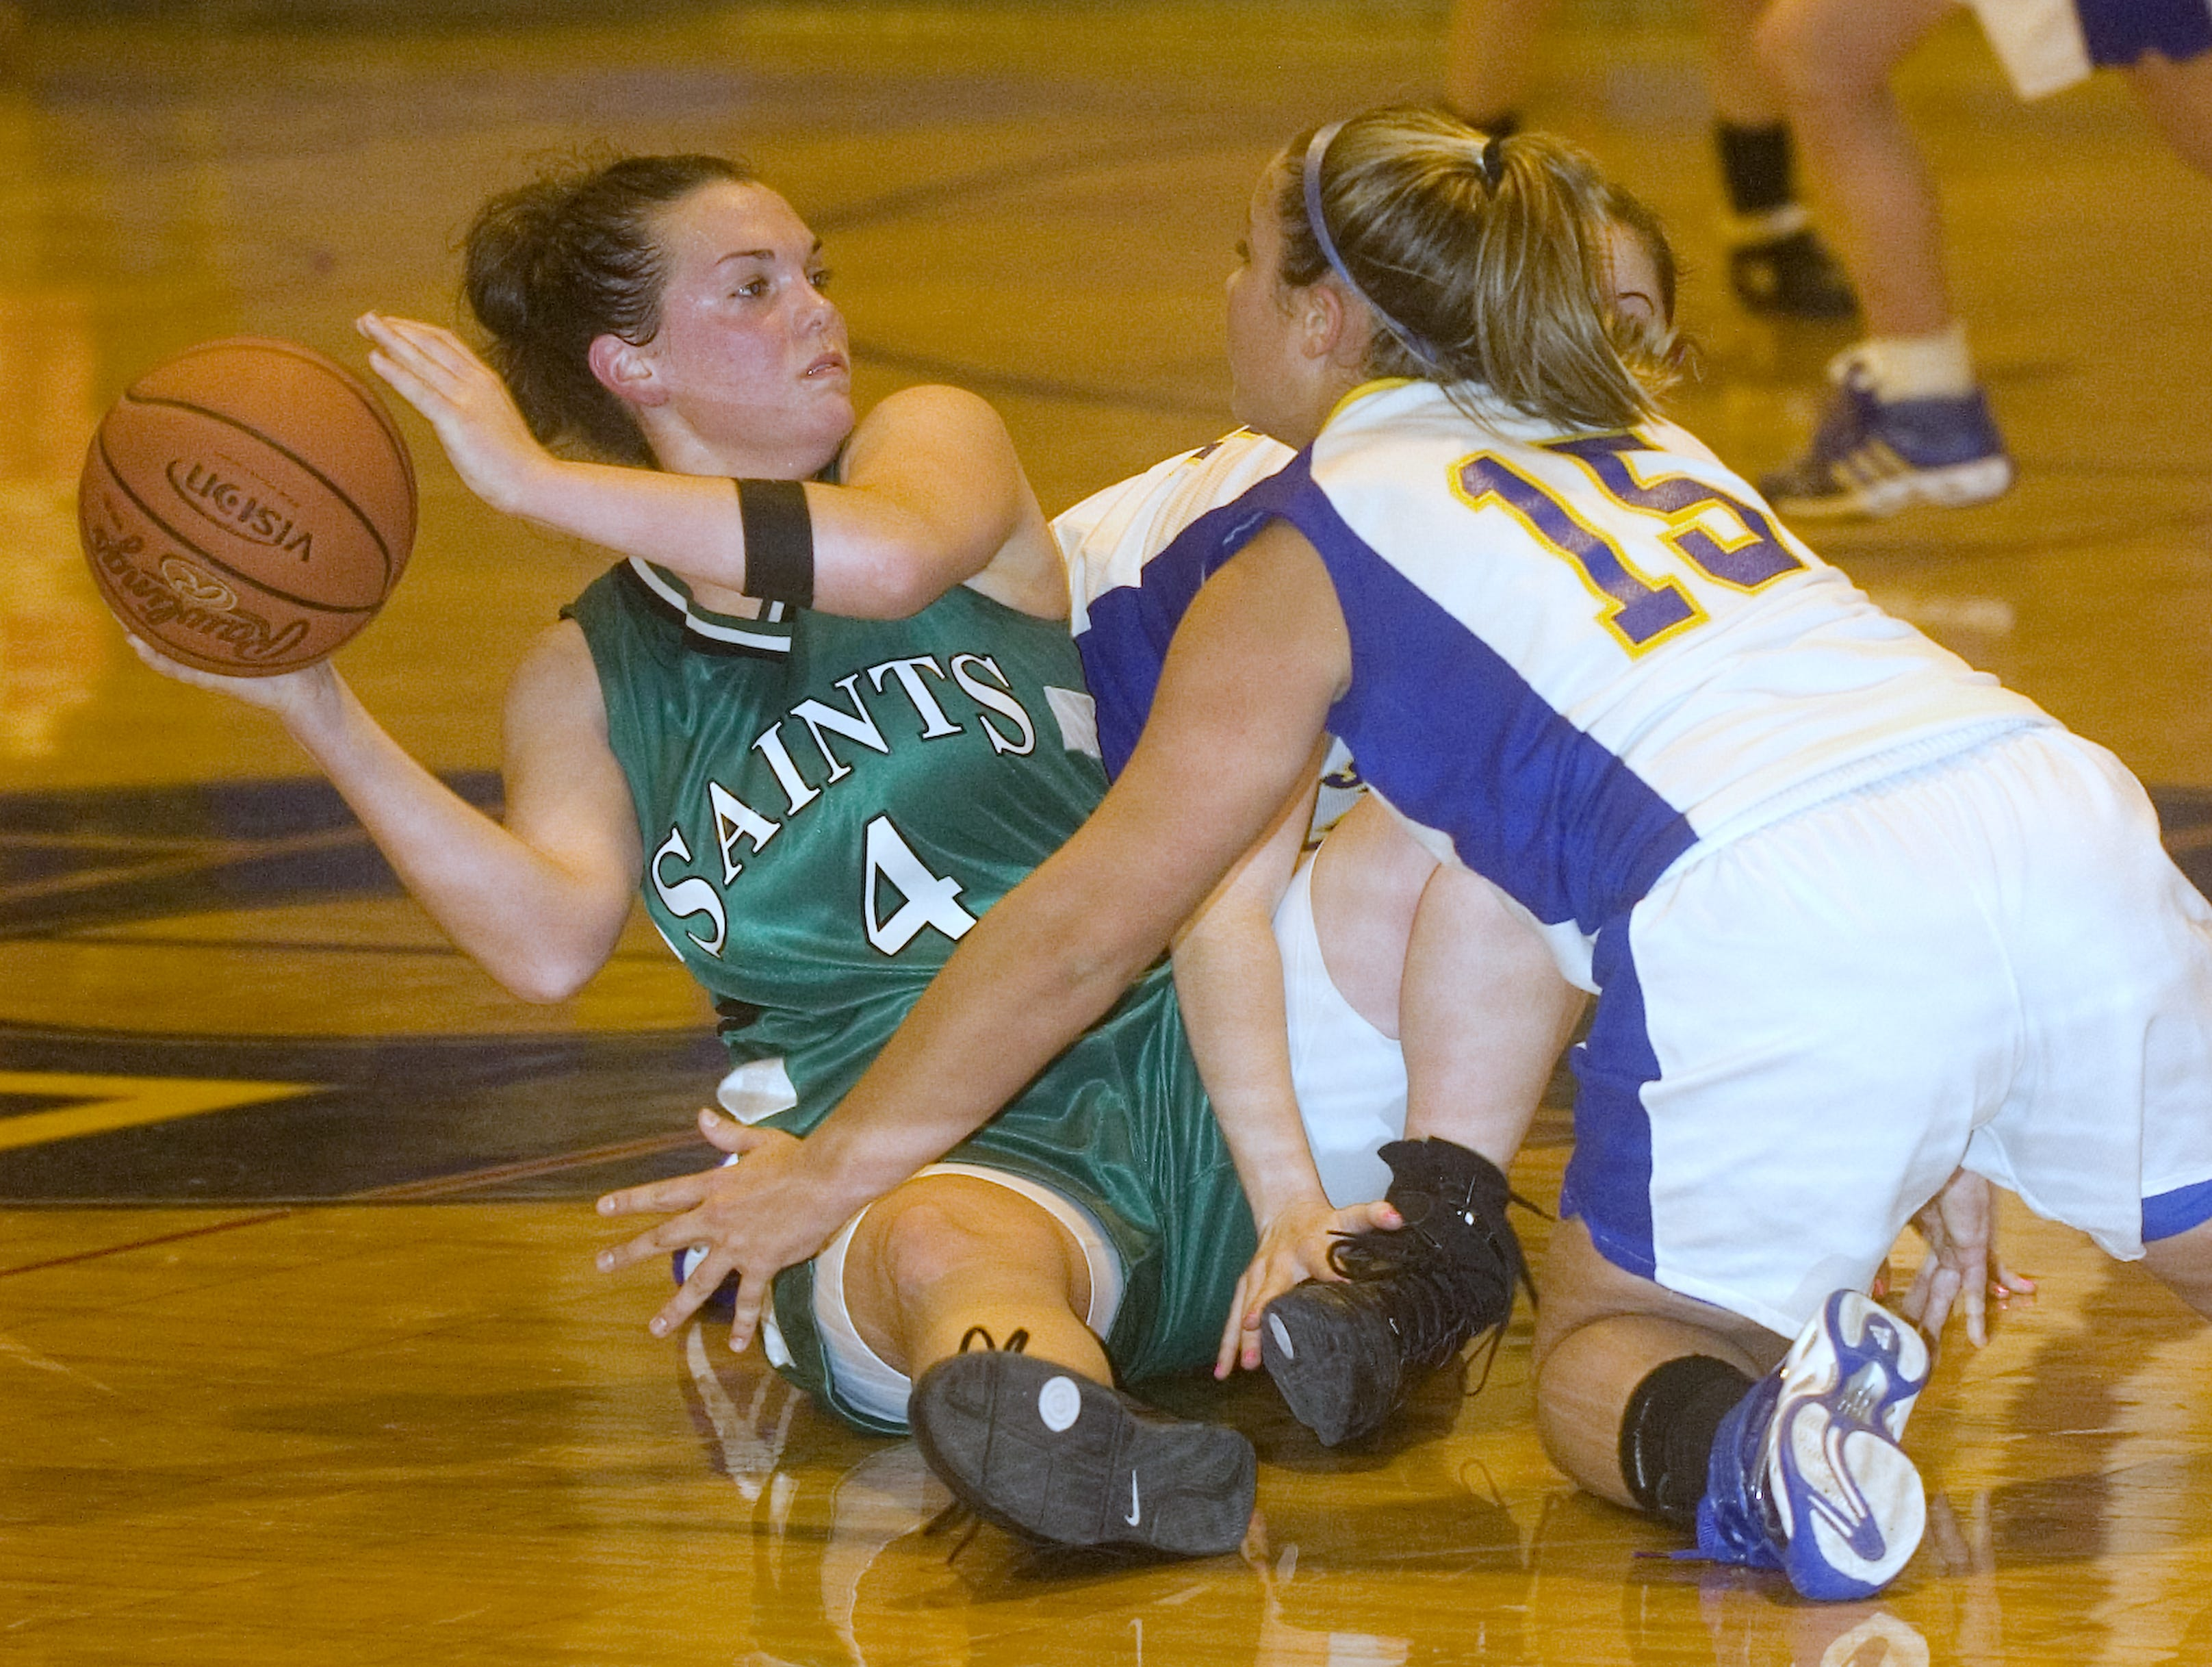 2009: Seton Catholic Central's Katherine Torto, left, looks to pass after collecting the loose ball as Maine-Endwell's Kaitlyn Harris defends in the second quarter of Friday's game at M-E.